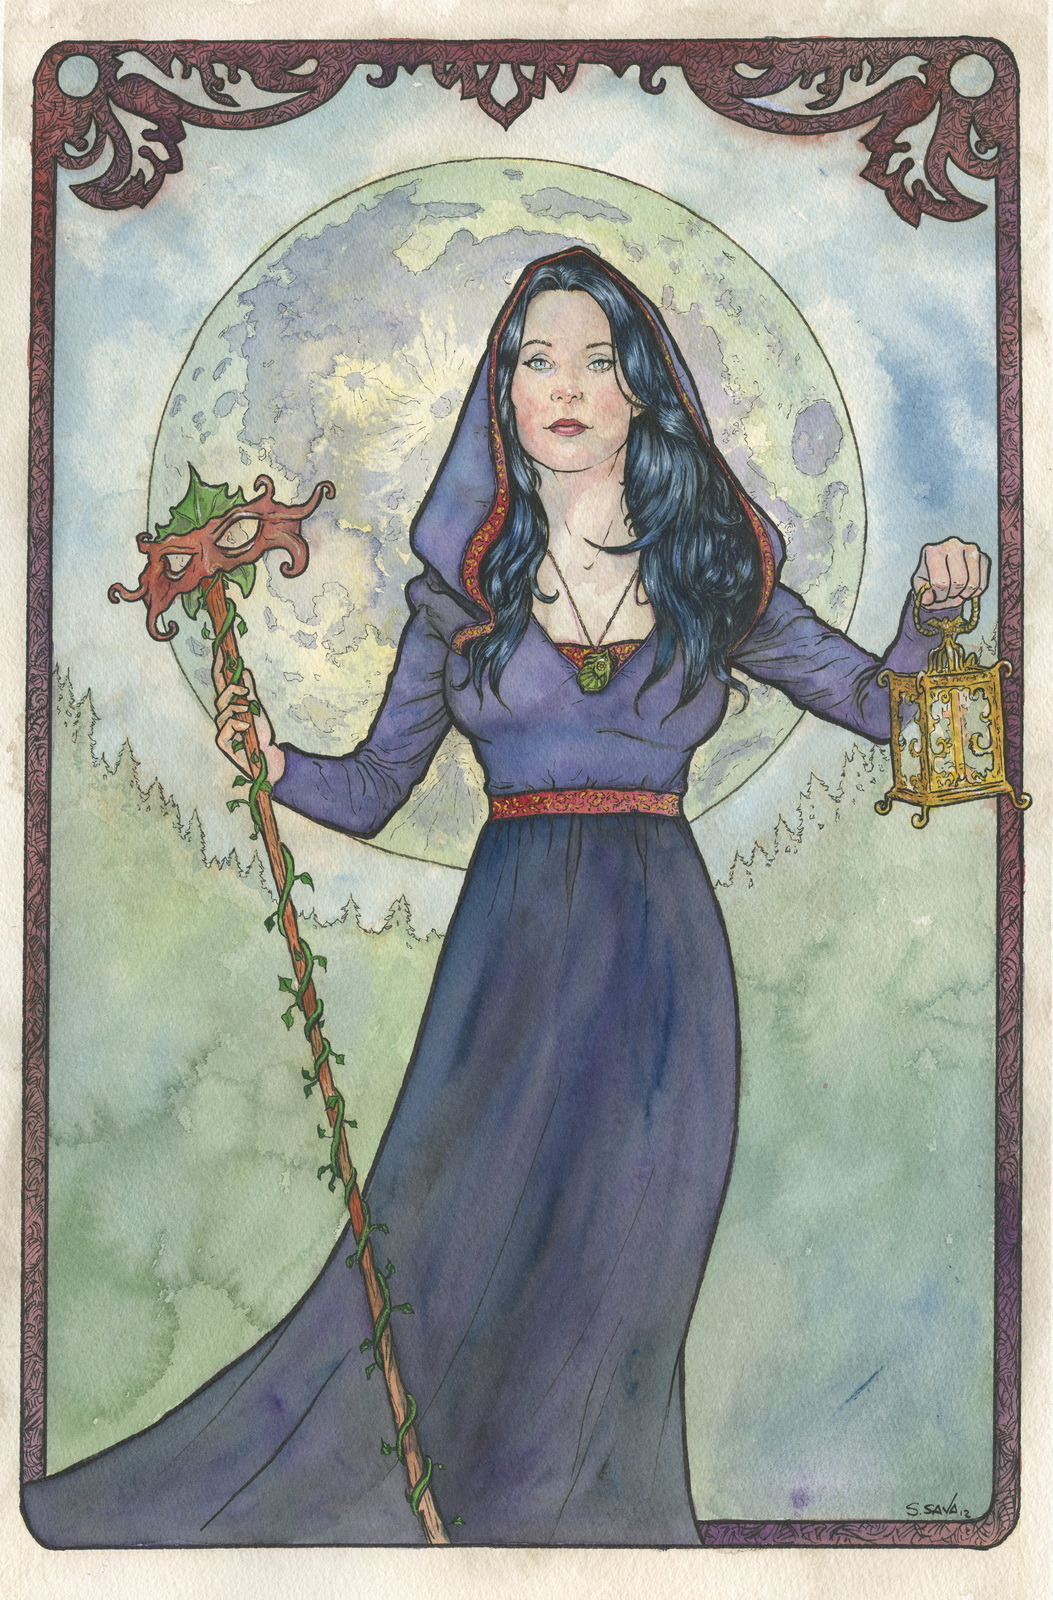 This is the 11th Art Nouveau/Alphonse Mucha inspired watercolor painting I've done this year.The painting is on 15x22 inch Arches Cold Press watercolor paper. Done in watercolors and ink.Photo reference/inspiration can be seen here…http://browse.deviantart.com/resources/?order=9&q=kuoma&offset=72#/d57jvohOriginal paintings can be purchased here…http://www.etsy.com/shop/ScottChristianSava?section_id=11821287and Limited Edition Prints can be purchased here…http://www.etsy.com/shop/ScottChristianSava?section_id=11821297Thanks for looking!Scott